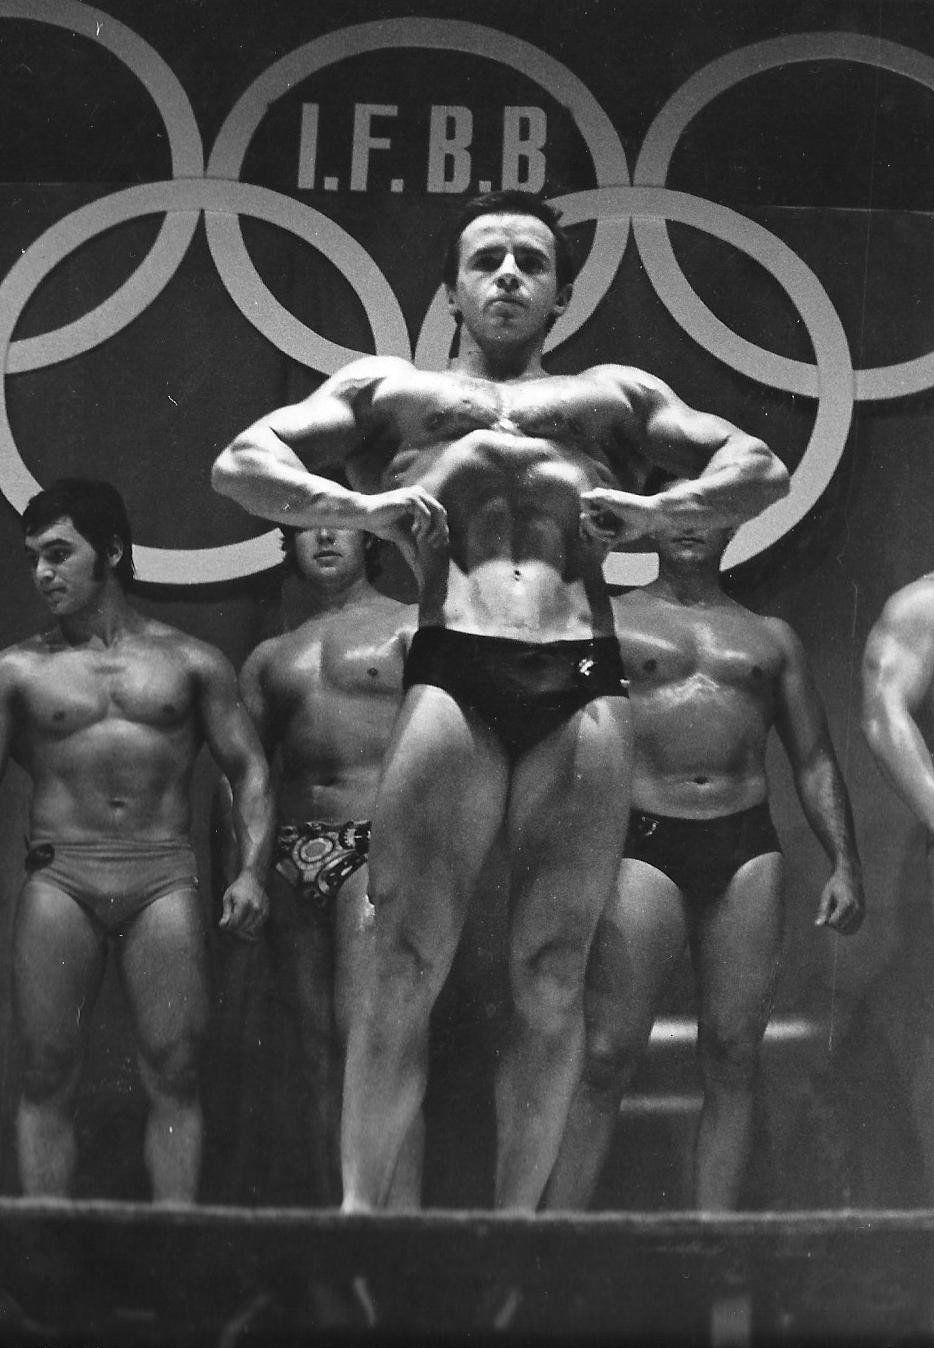 IFBB President Santonja pictured in the1970s during his time as an actively competing bodybuilder ©IFBB